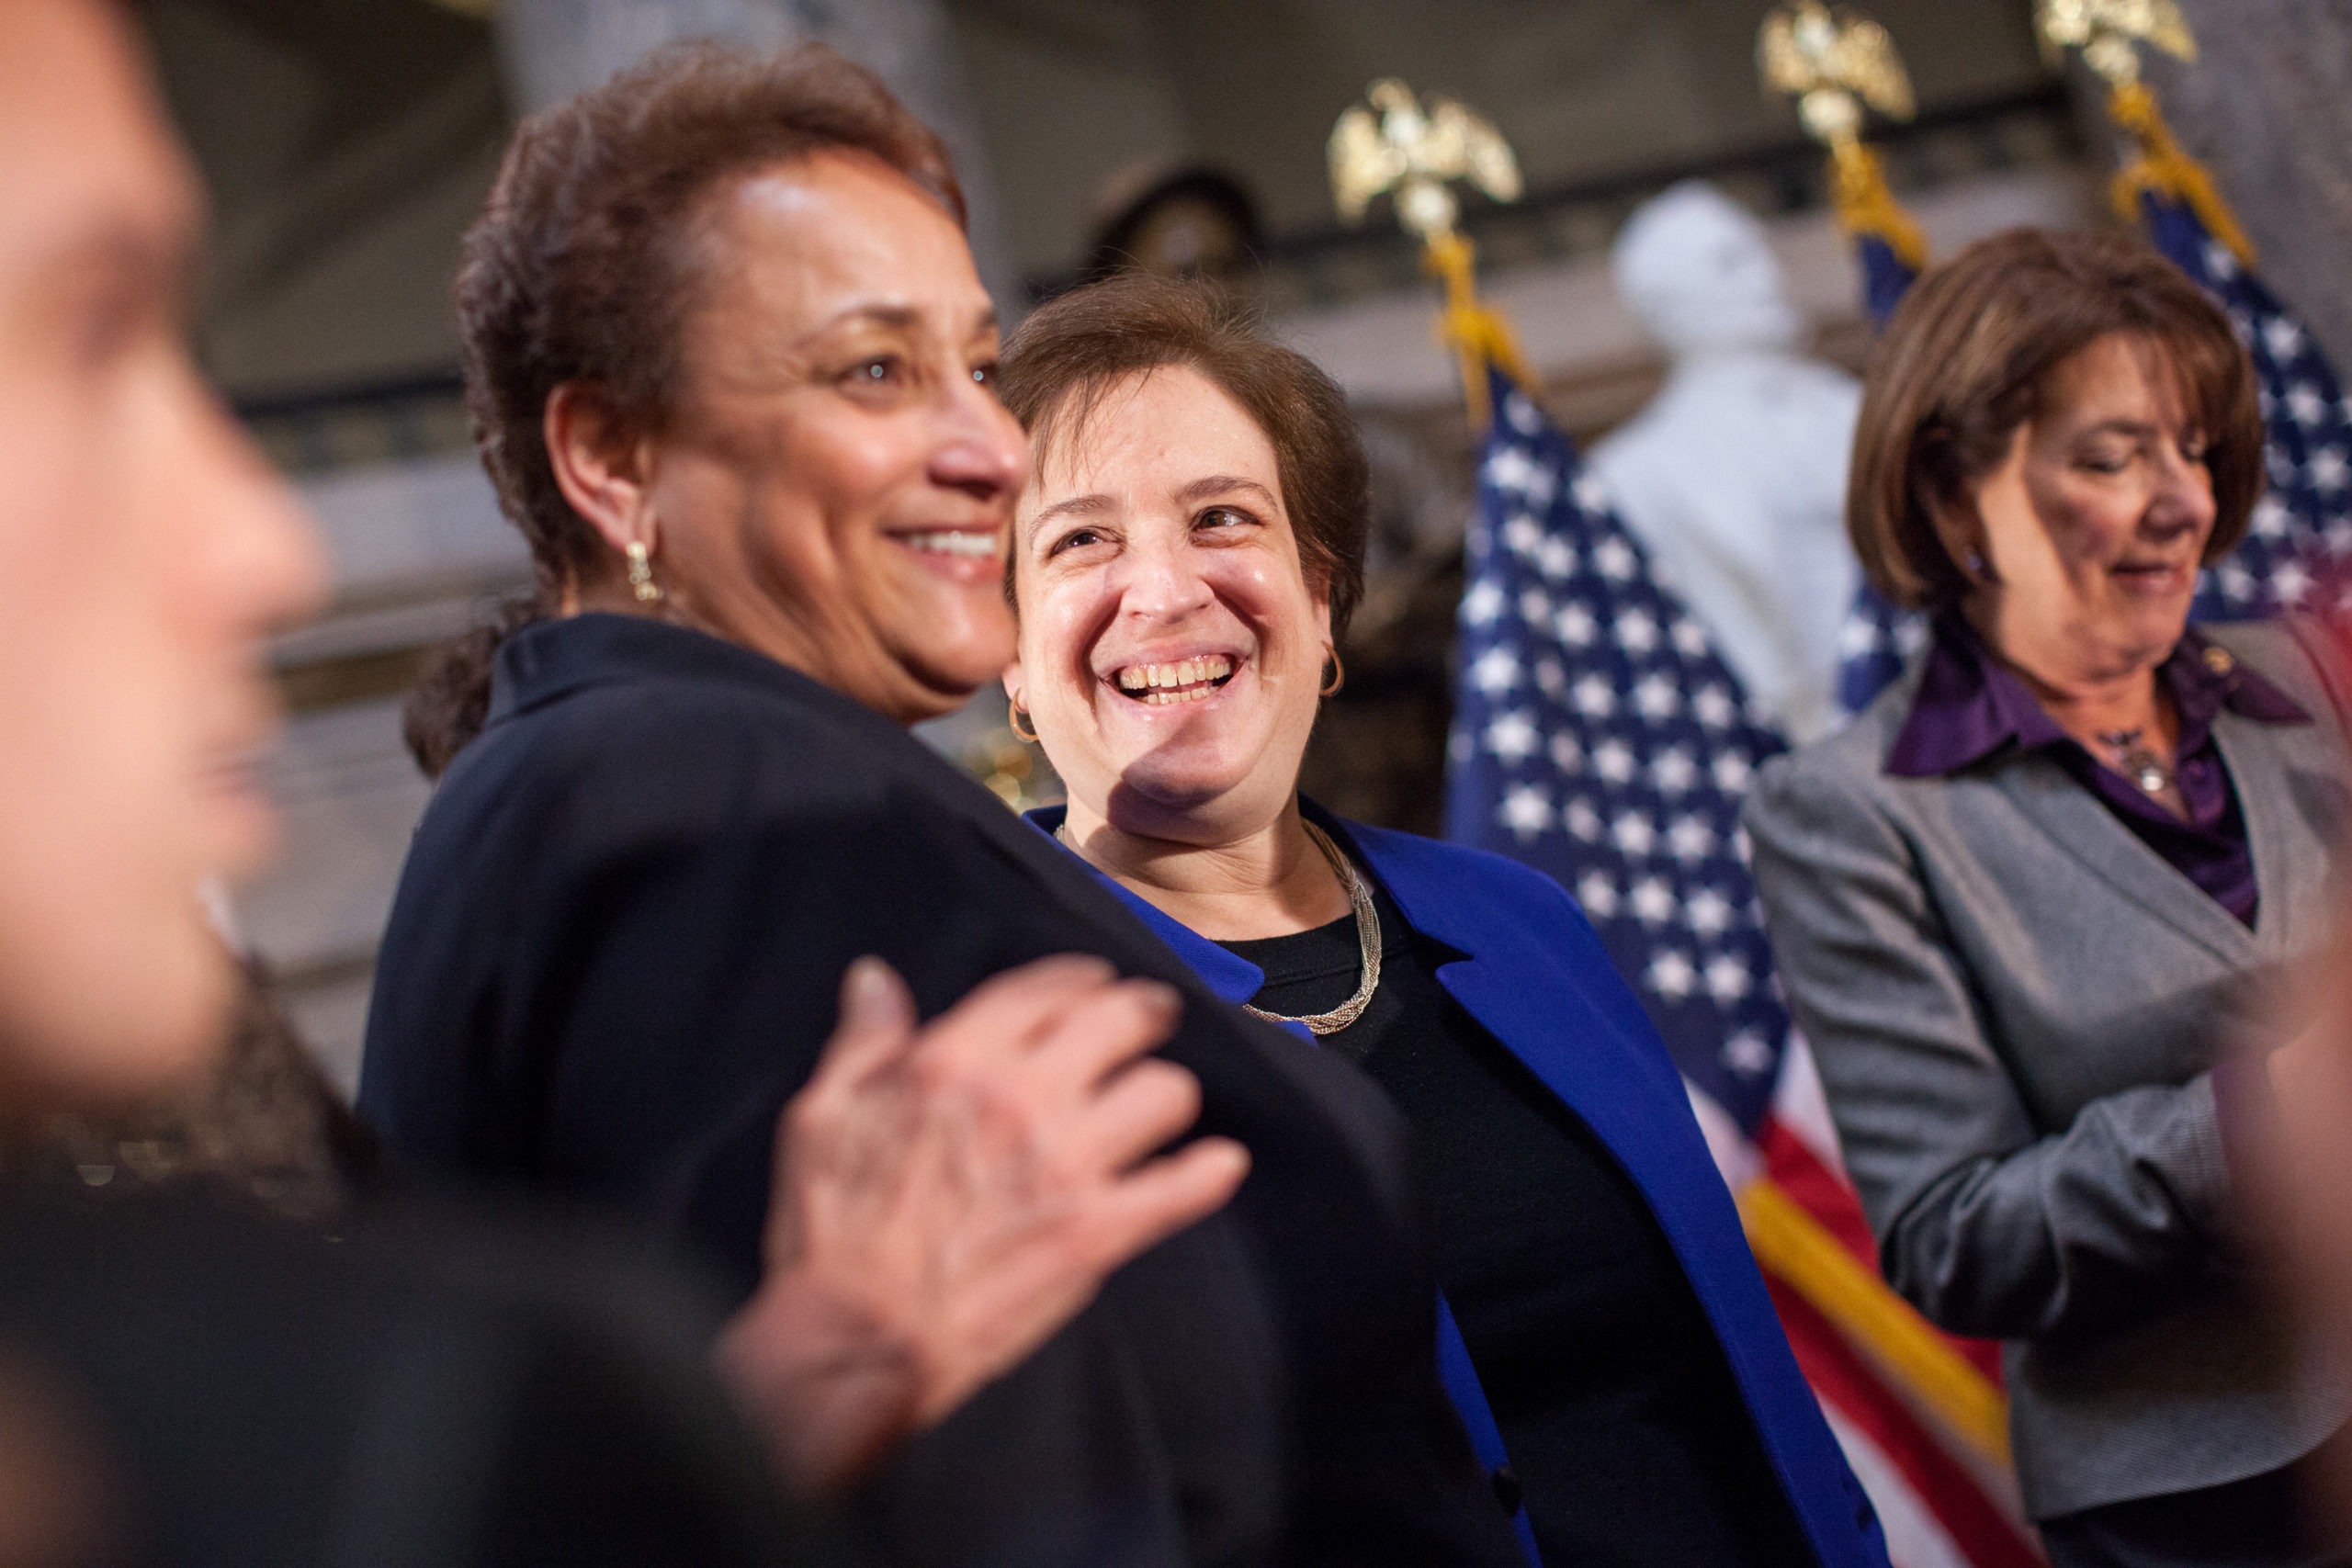 U.S. Supreme Court Justice Elena Kagan speaks with AARP CEO Jo Ann Jenkins at an annual Women's History Month reception hosted by Democratic House Leader Nancy Pelosi in the U.S. capitol building on Capitol Hill in Washington, D.C. (Allison Shelley/Getty Images)